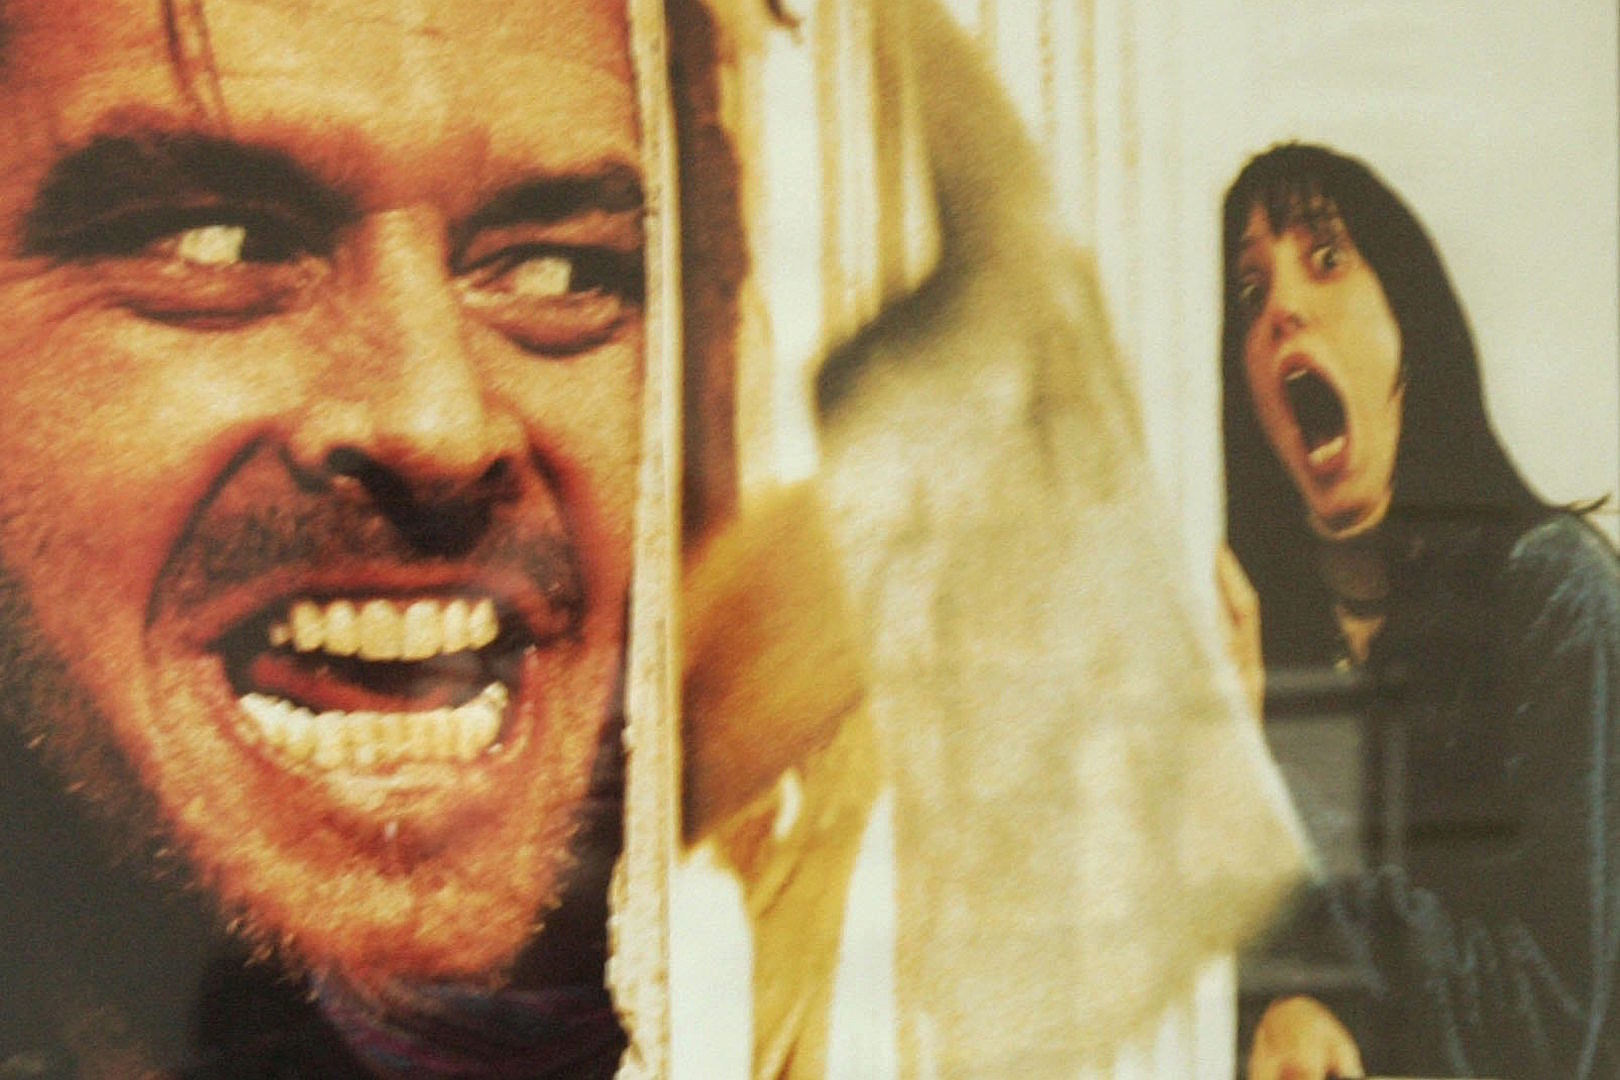 12-Year-Old Actor Reportedly Signs on for 'The Shining' Sequel